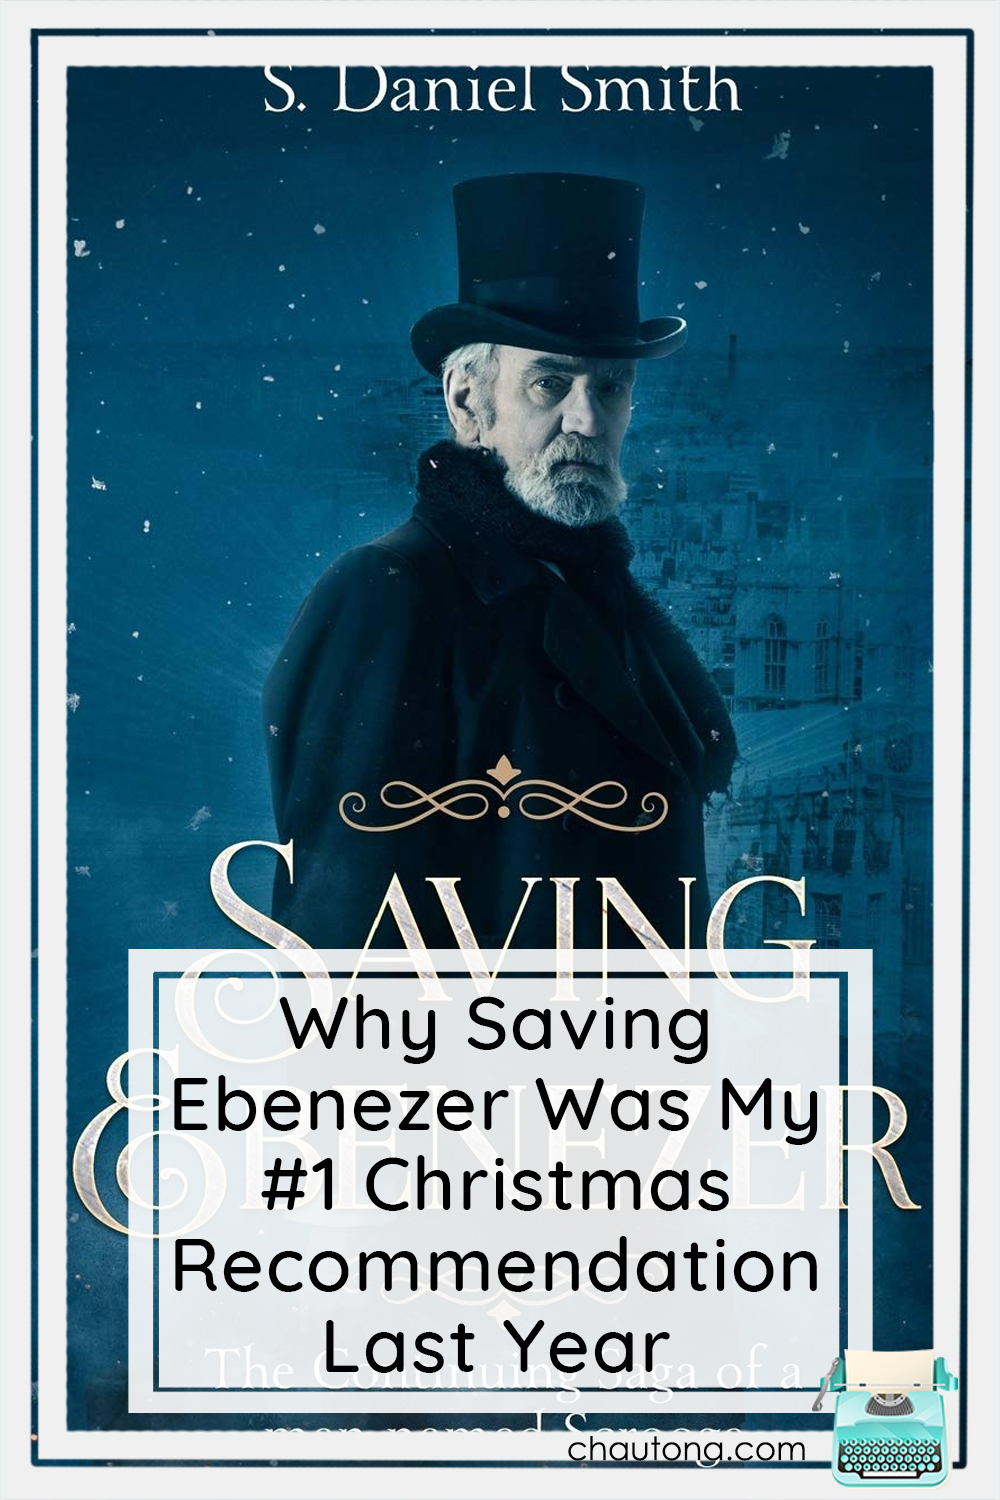 Saving Ebenezer delighted me last year, and it's just as wonderful again. This continuation story will answer questions the original left unanswered. via @chautonahavig